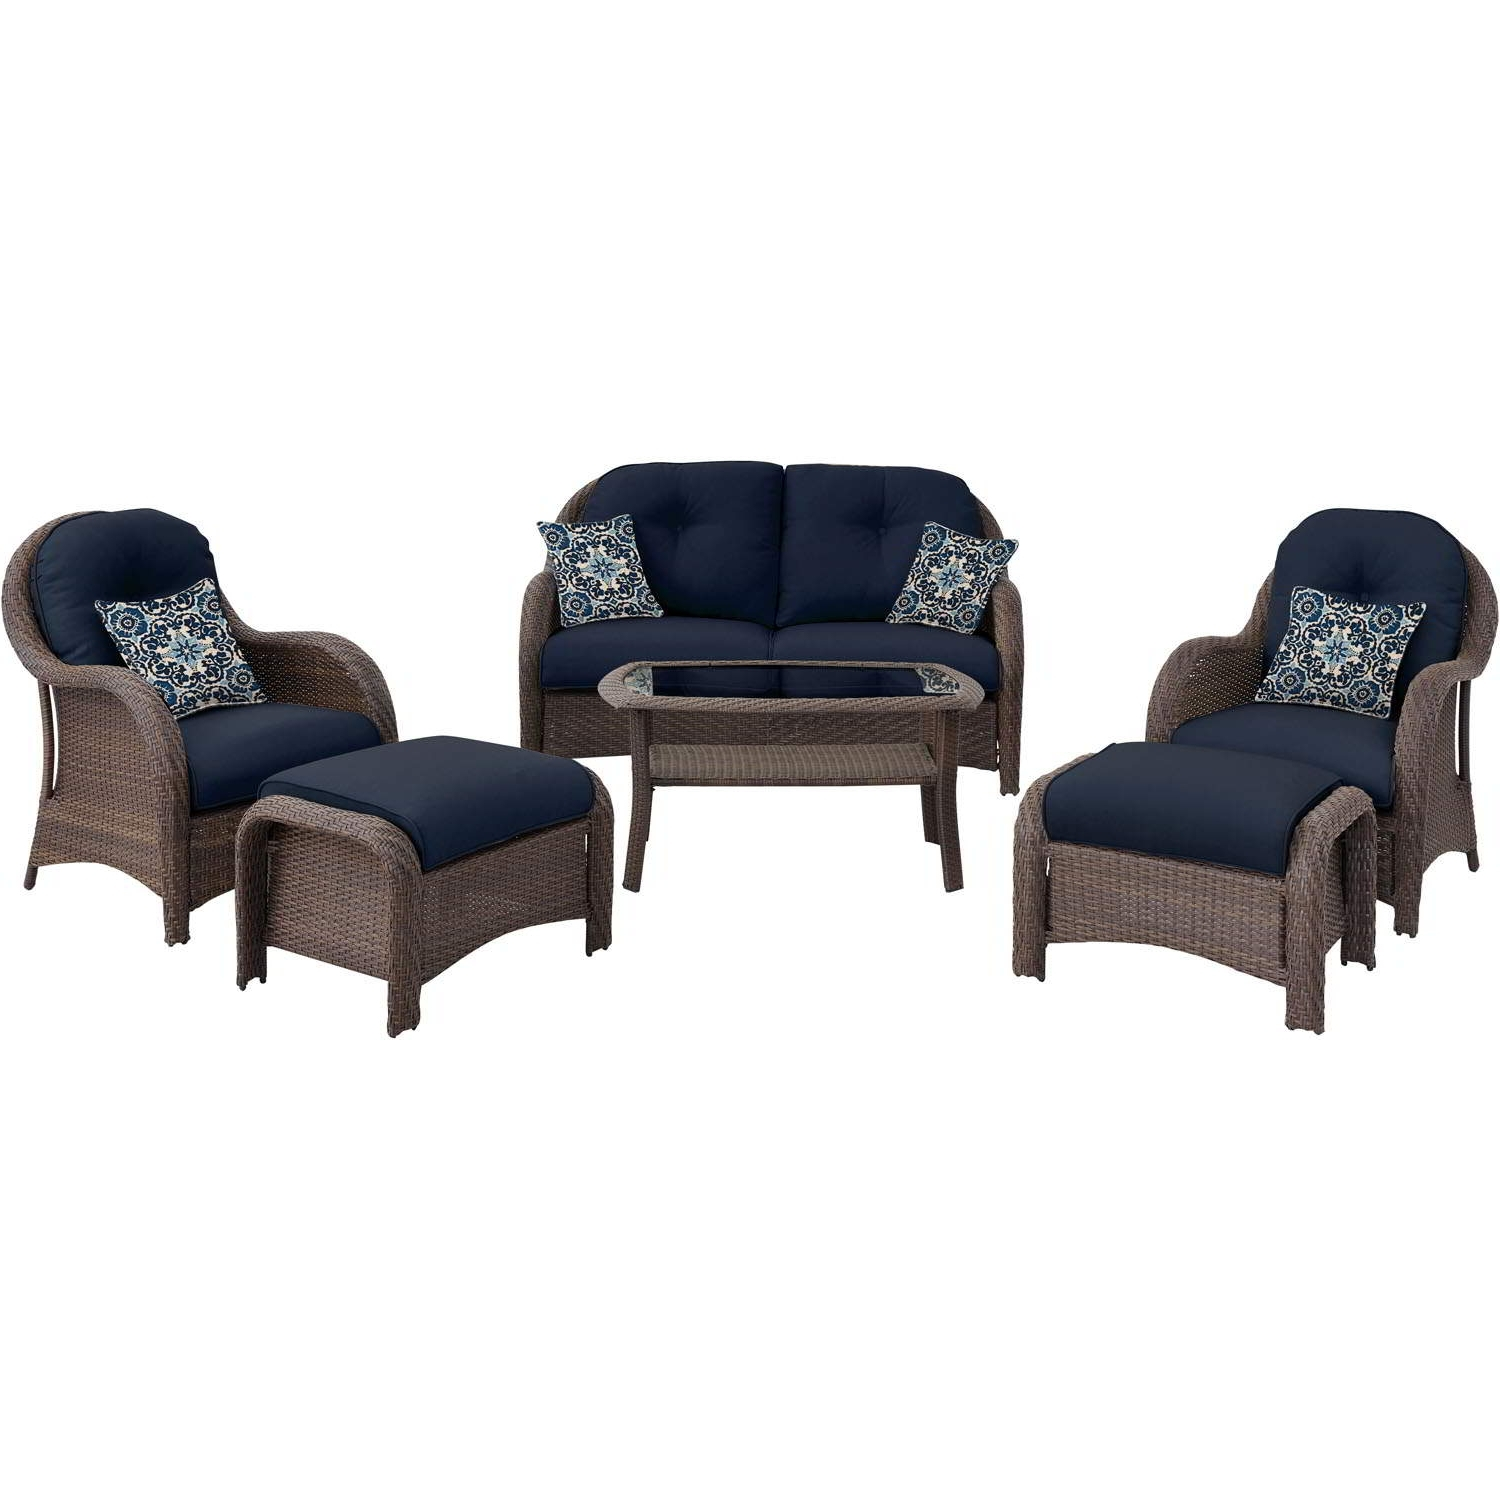 Preferred Patio Conversation Sets With Blue Cushions Throughout Newport 6 Piece Seating Set In Navy Blue – Newport6Pc Nvy (View 16 of 20)